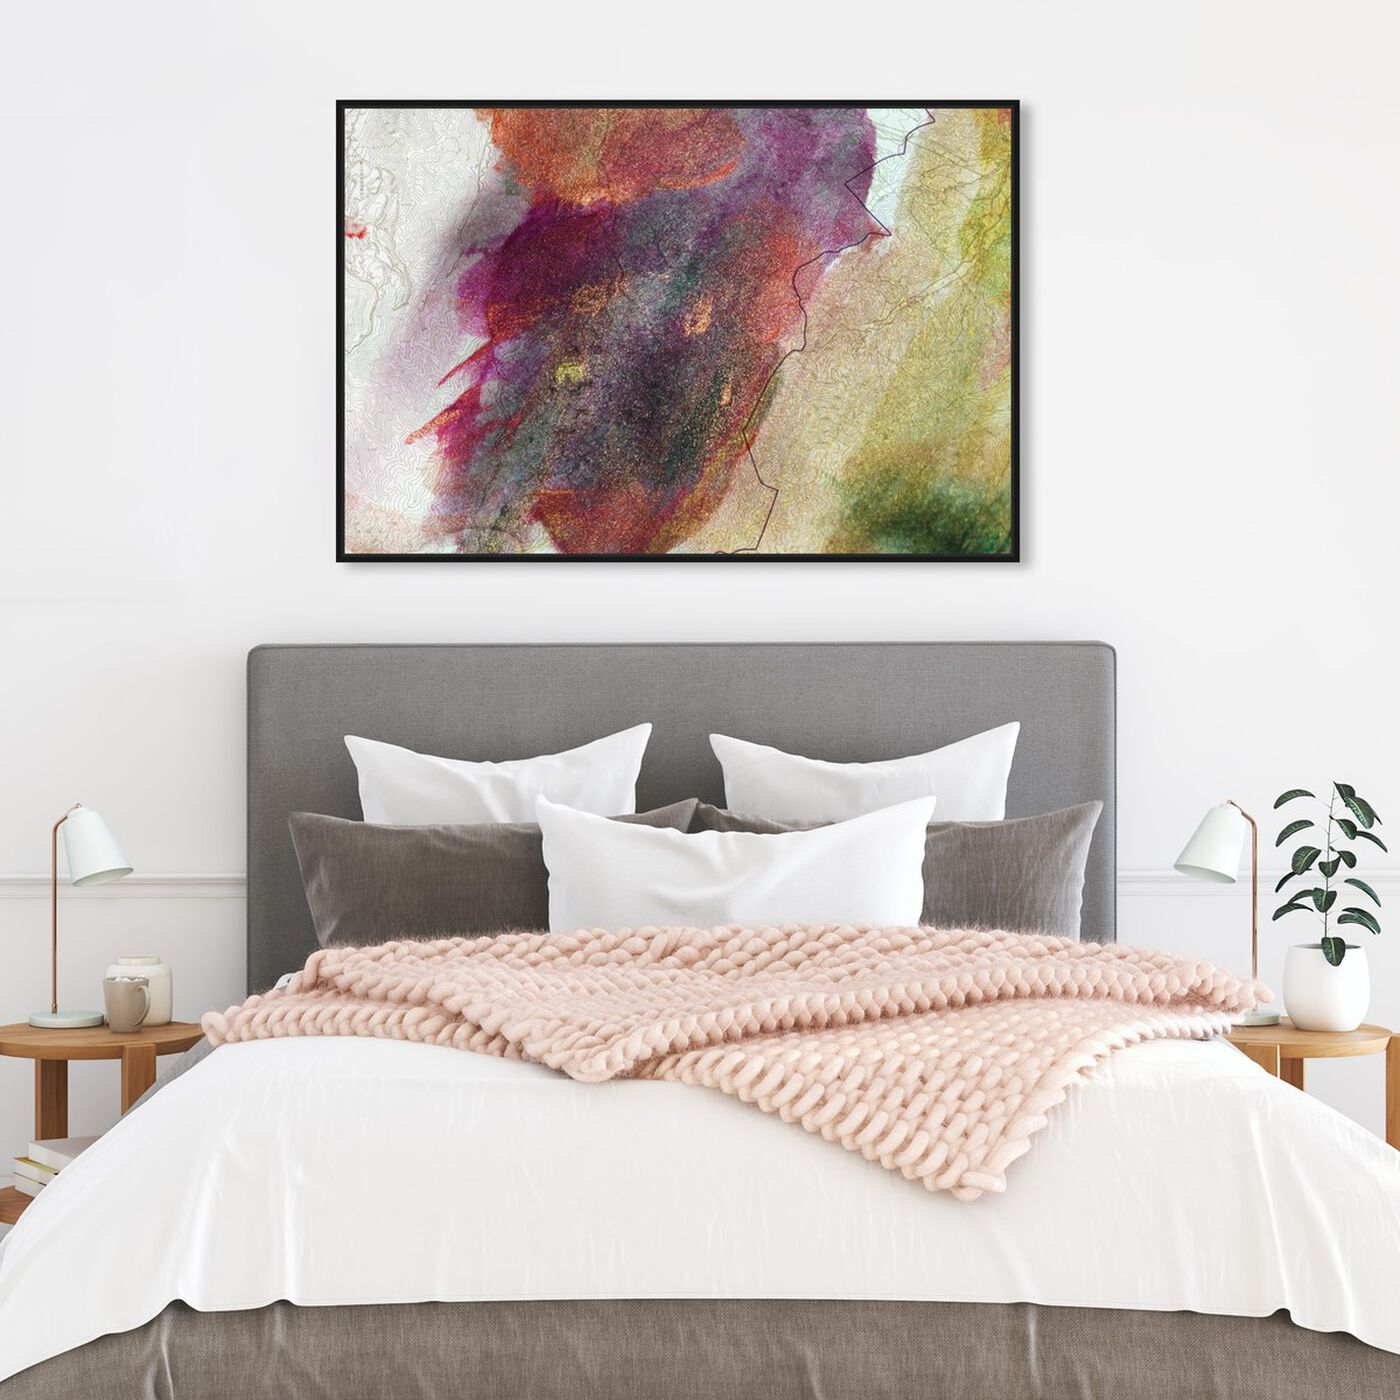 Hanging view of Mihara featuring abstract and paint art.